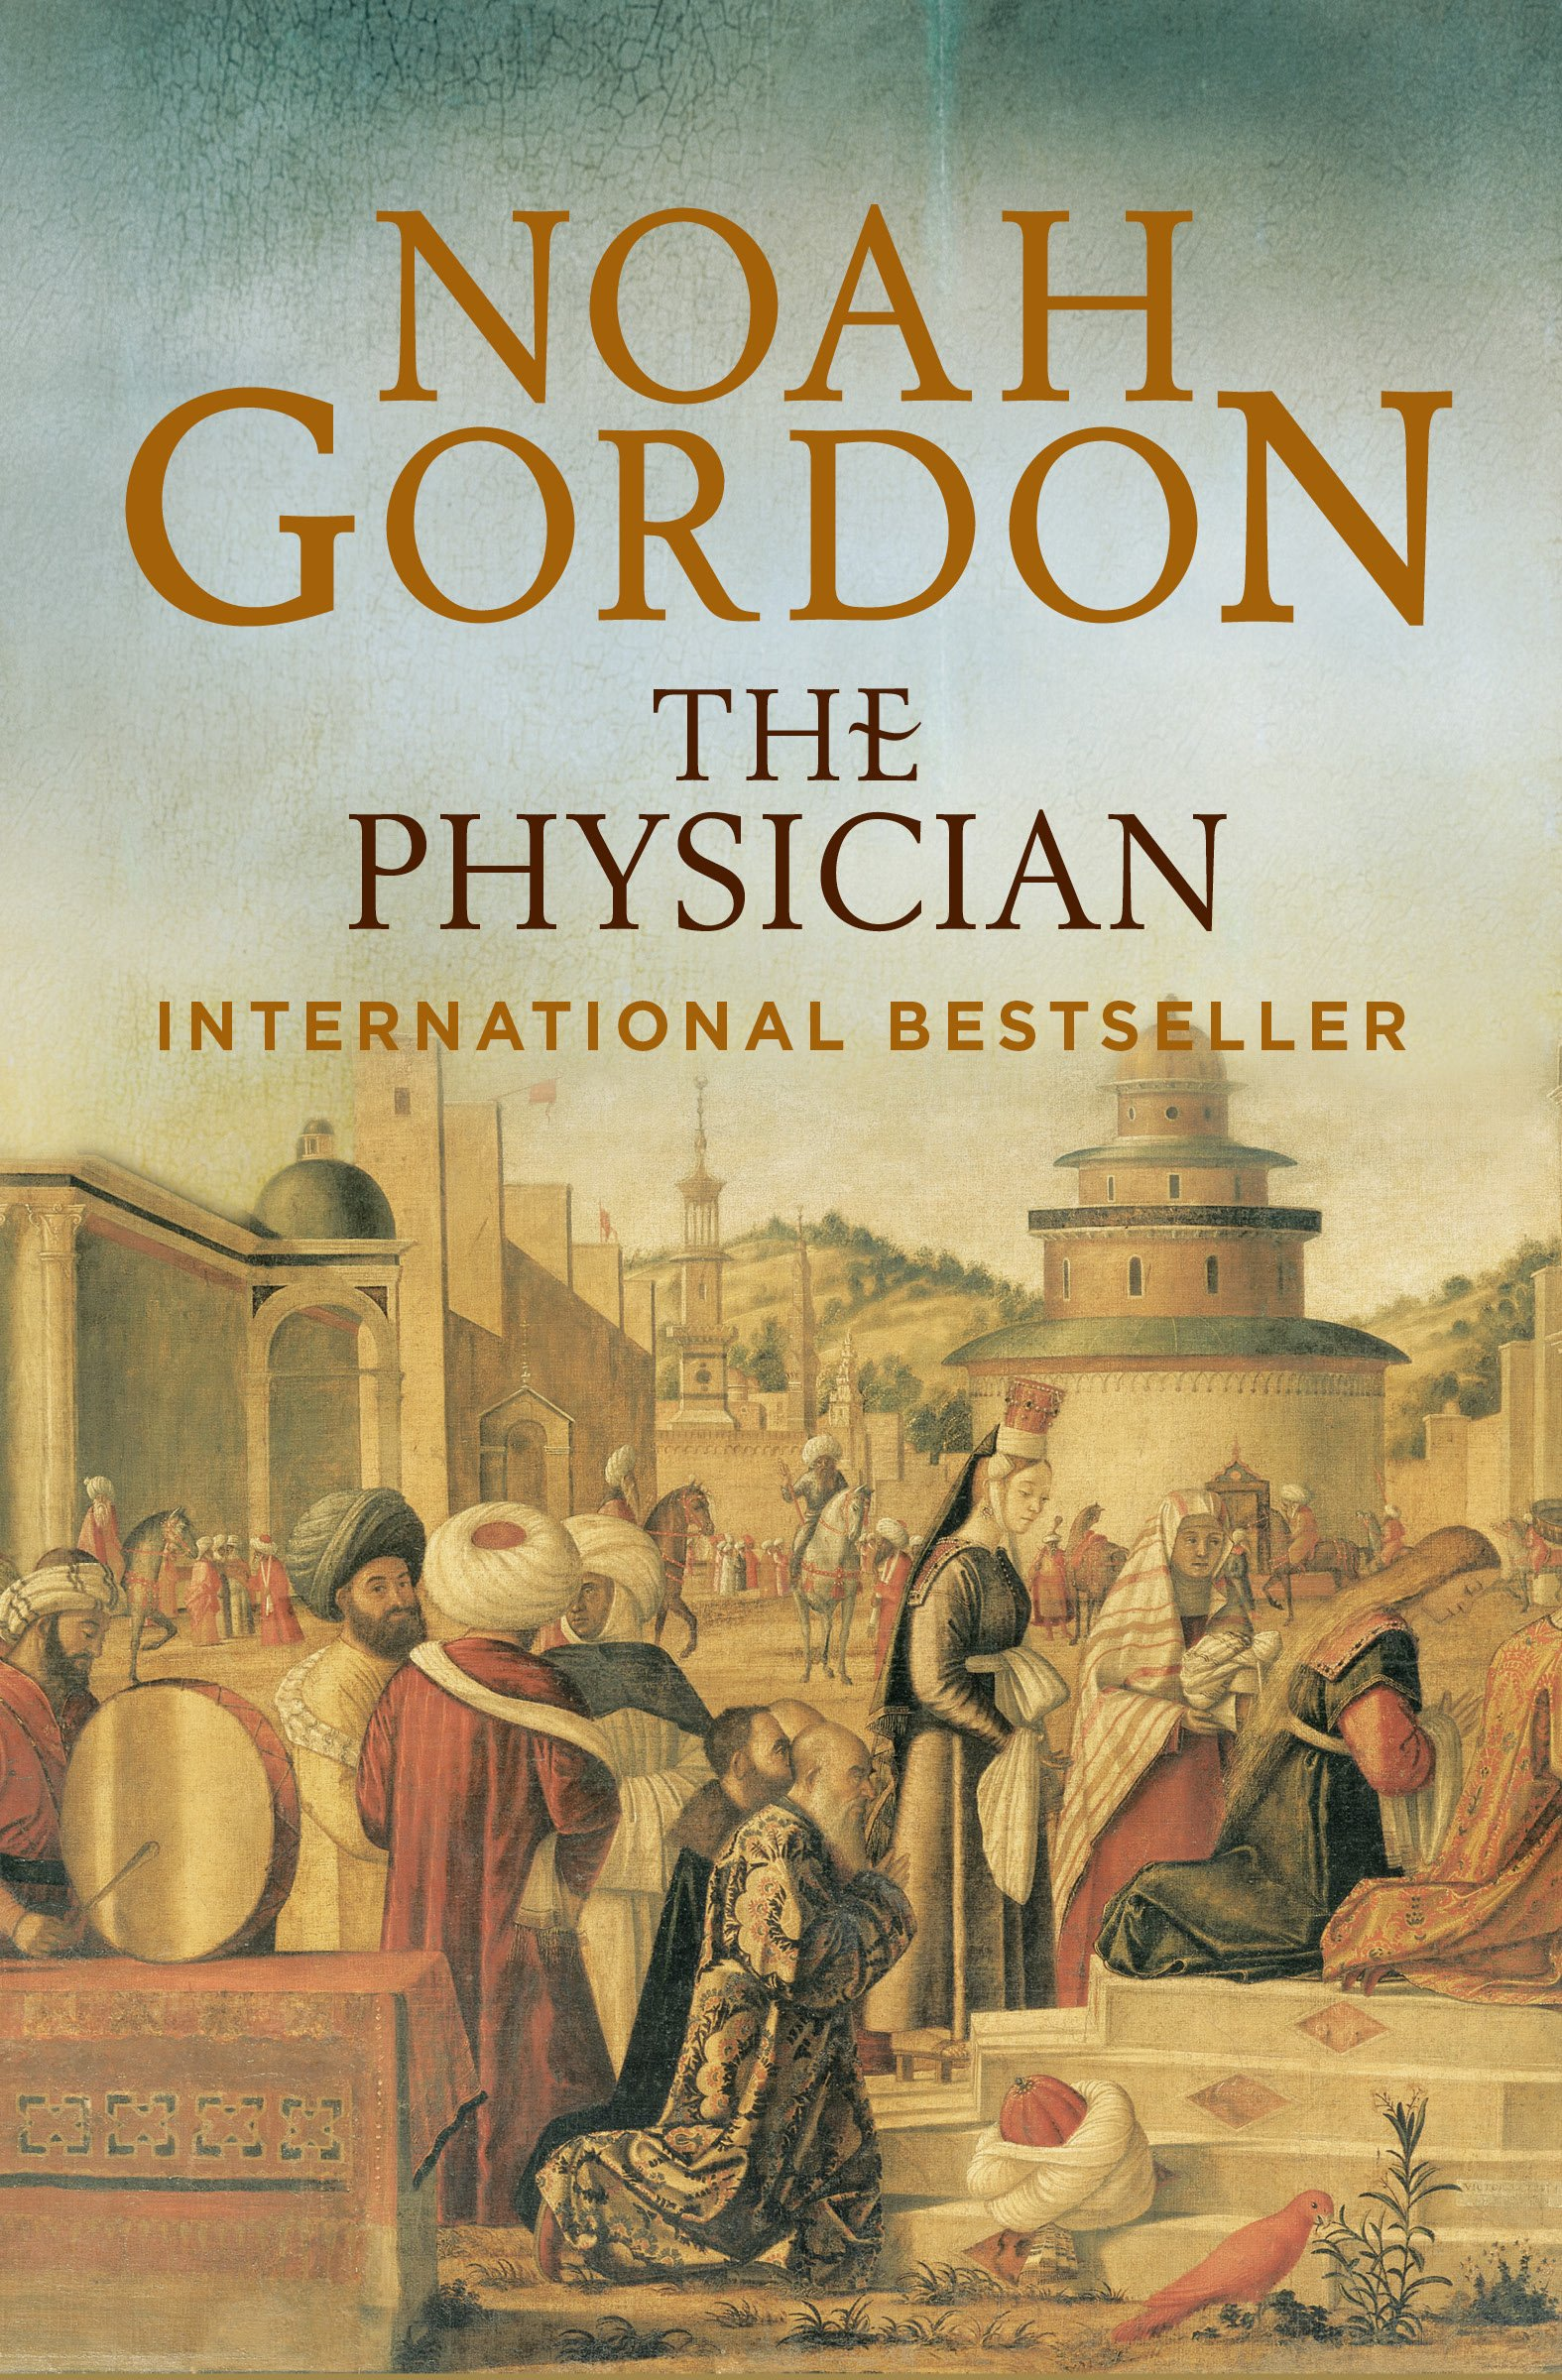 the physician noah gordon